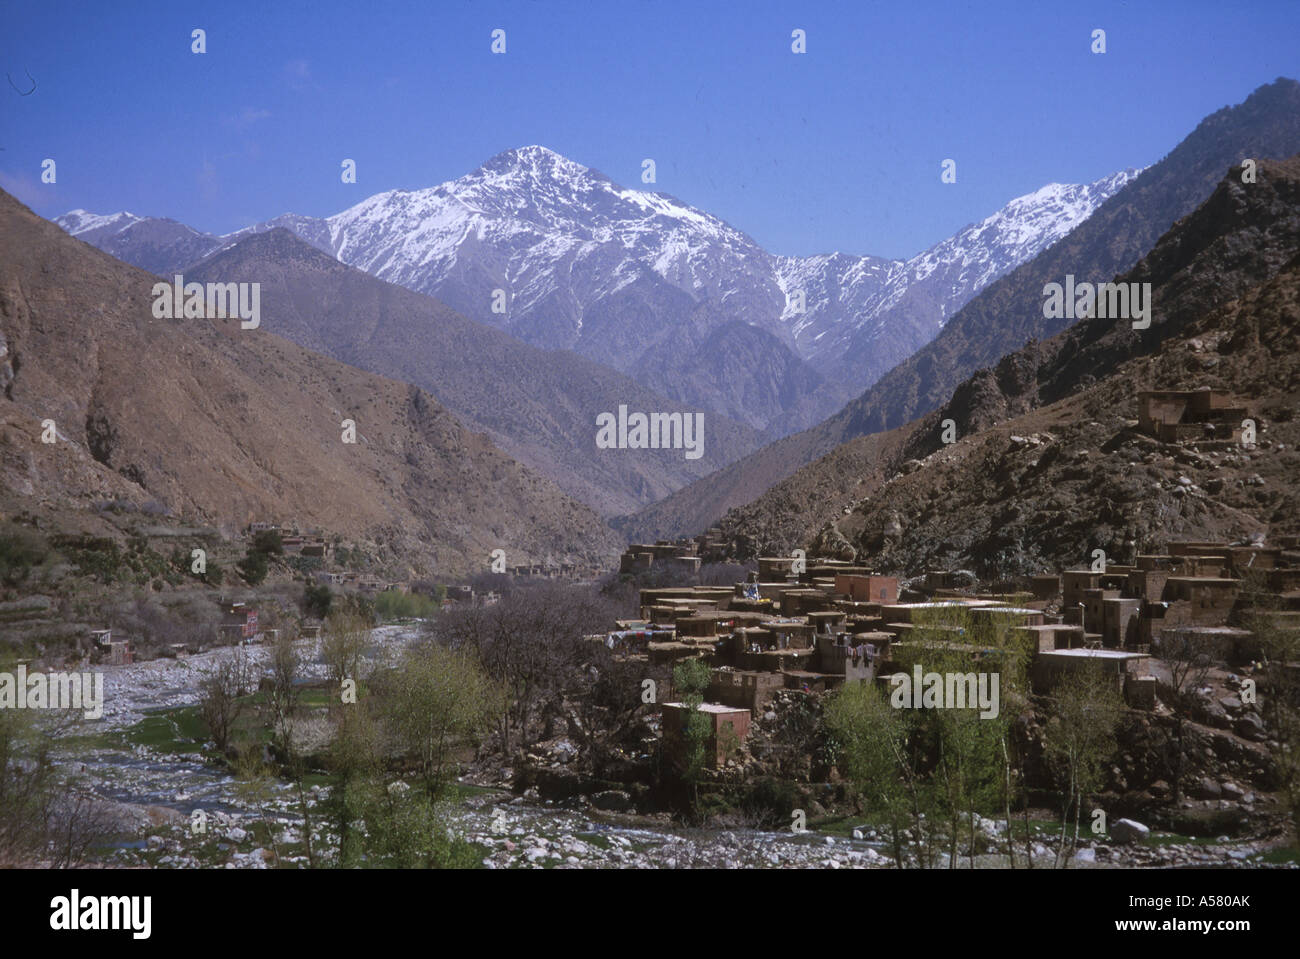 Painet ha2152 4319 morocco high atlas mountains sidi fatima country developing nation less economically developed - Stock Image